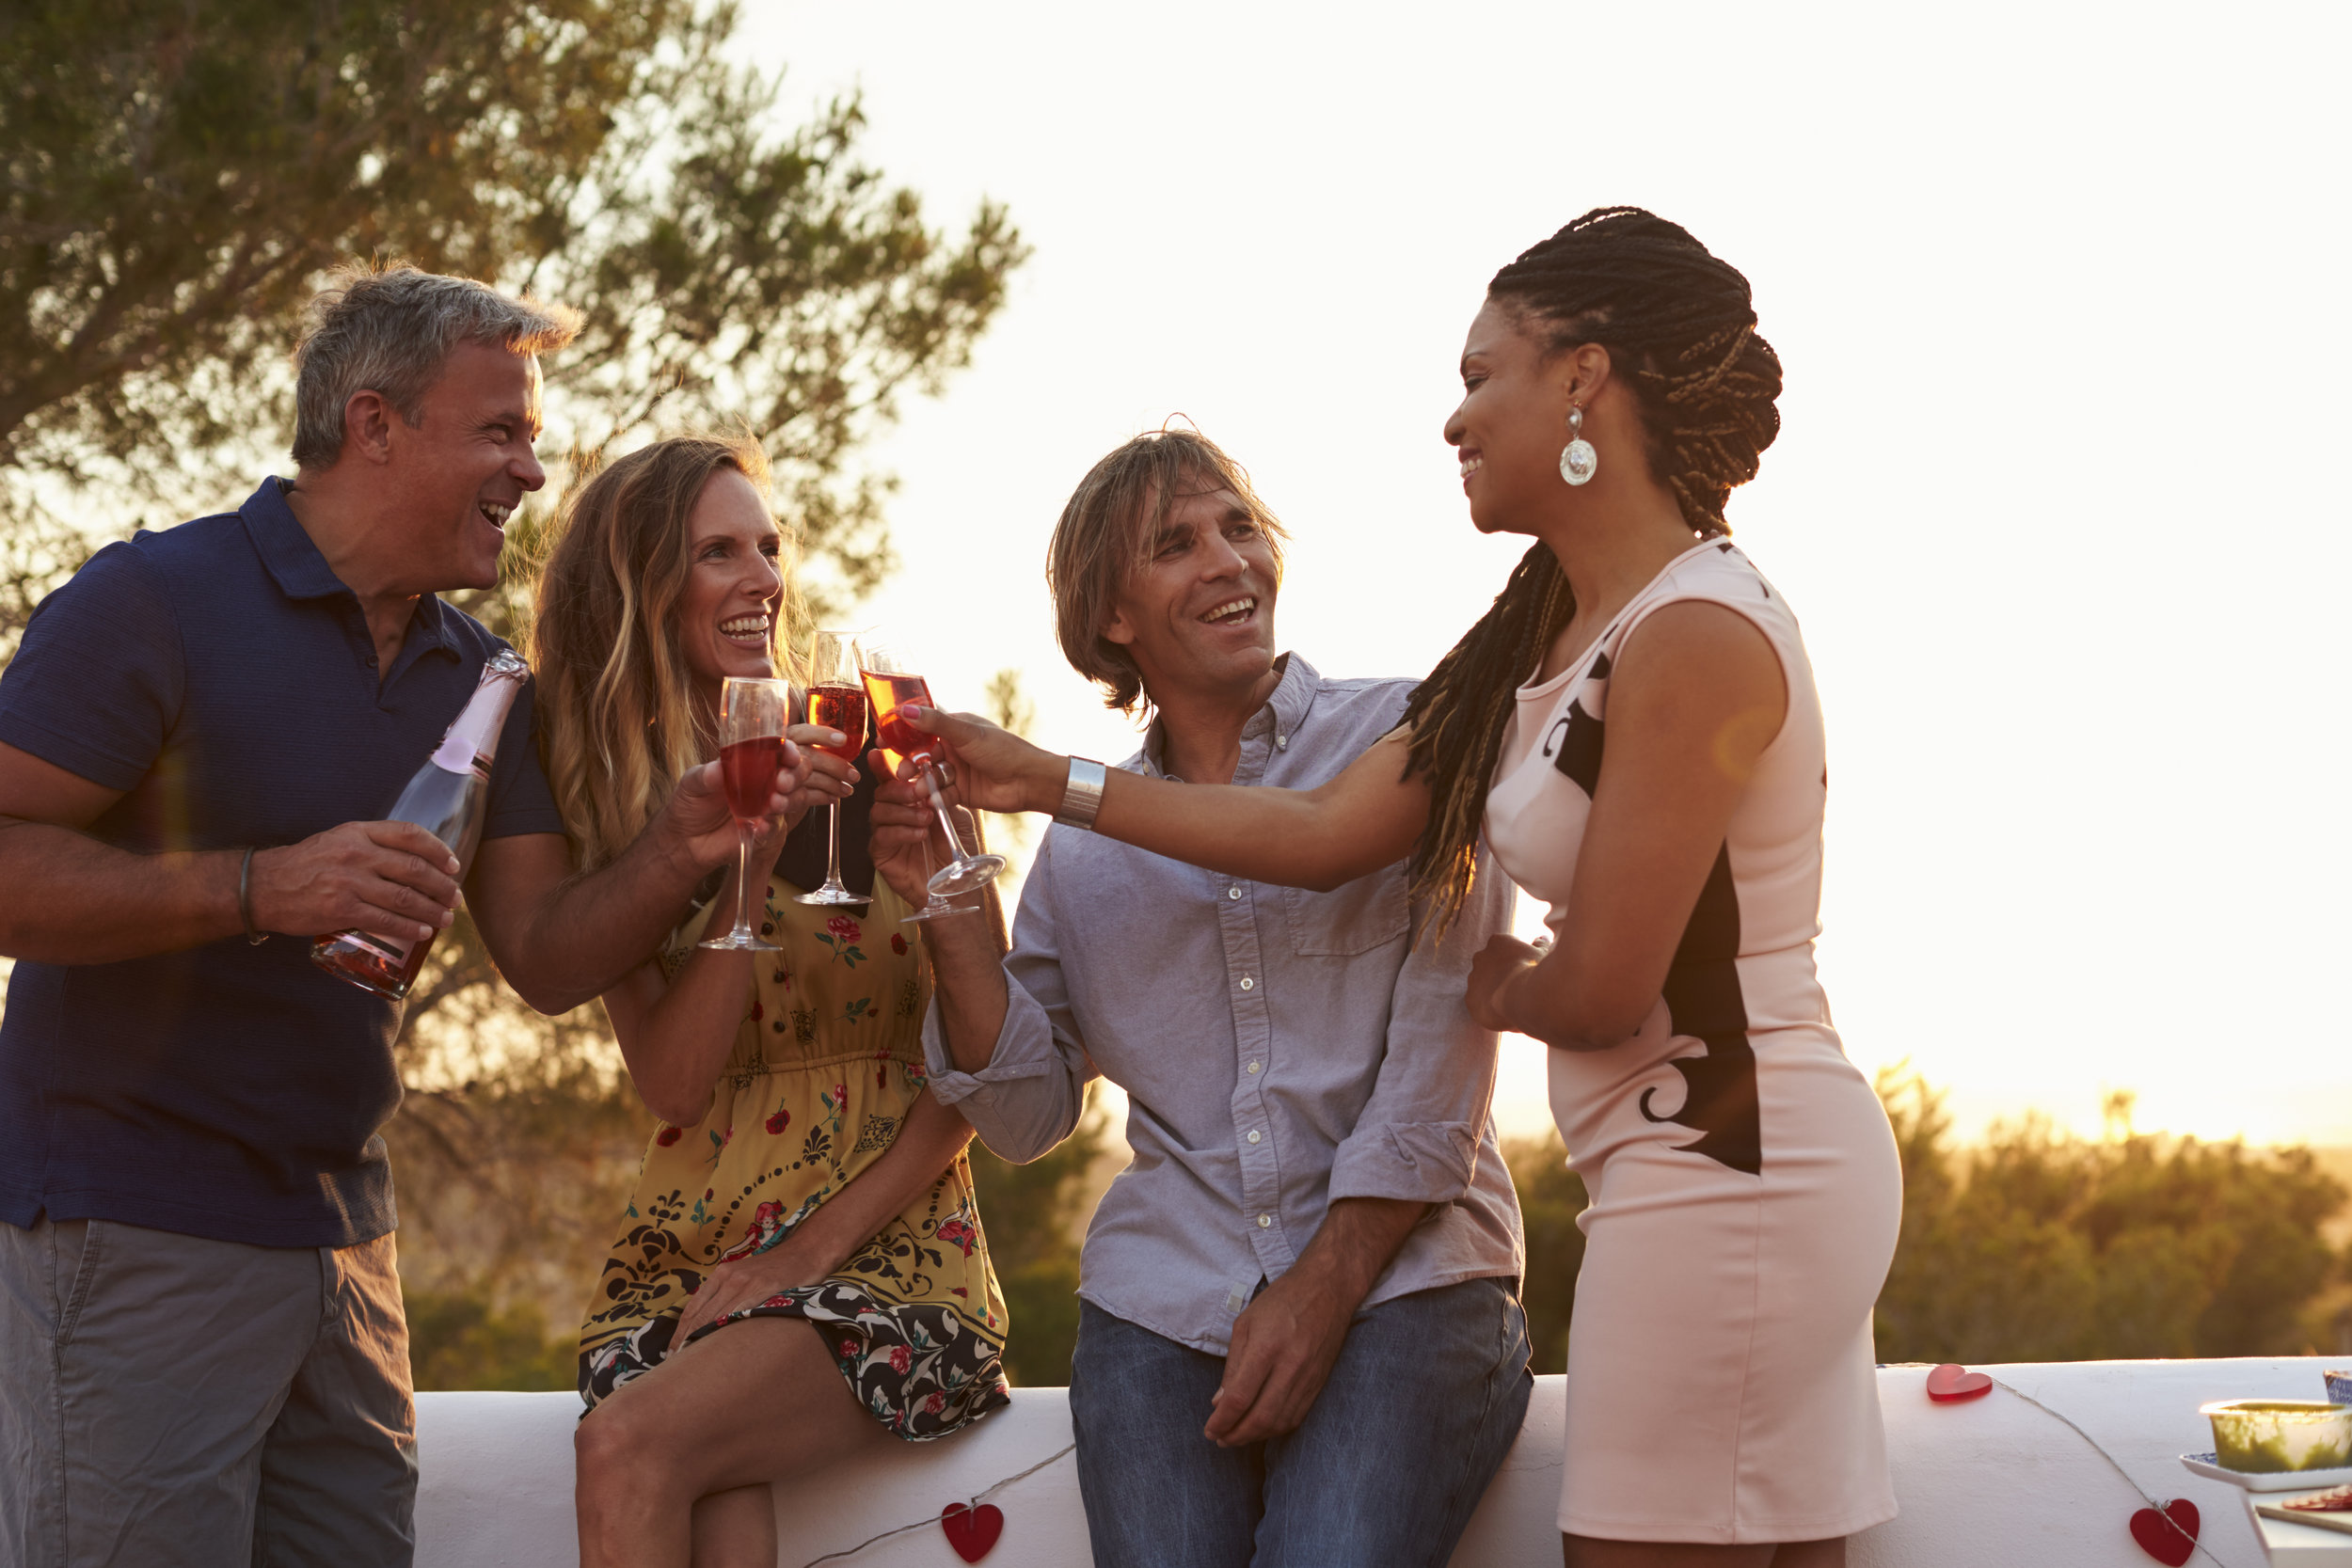 Drinks_Friends_iStock-639710138.jpg